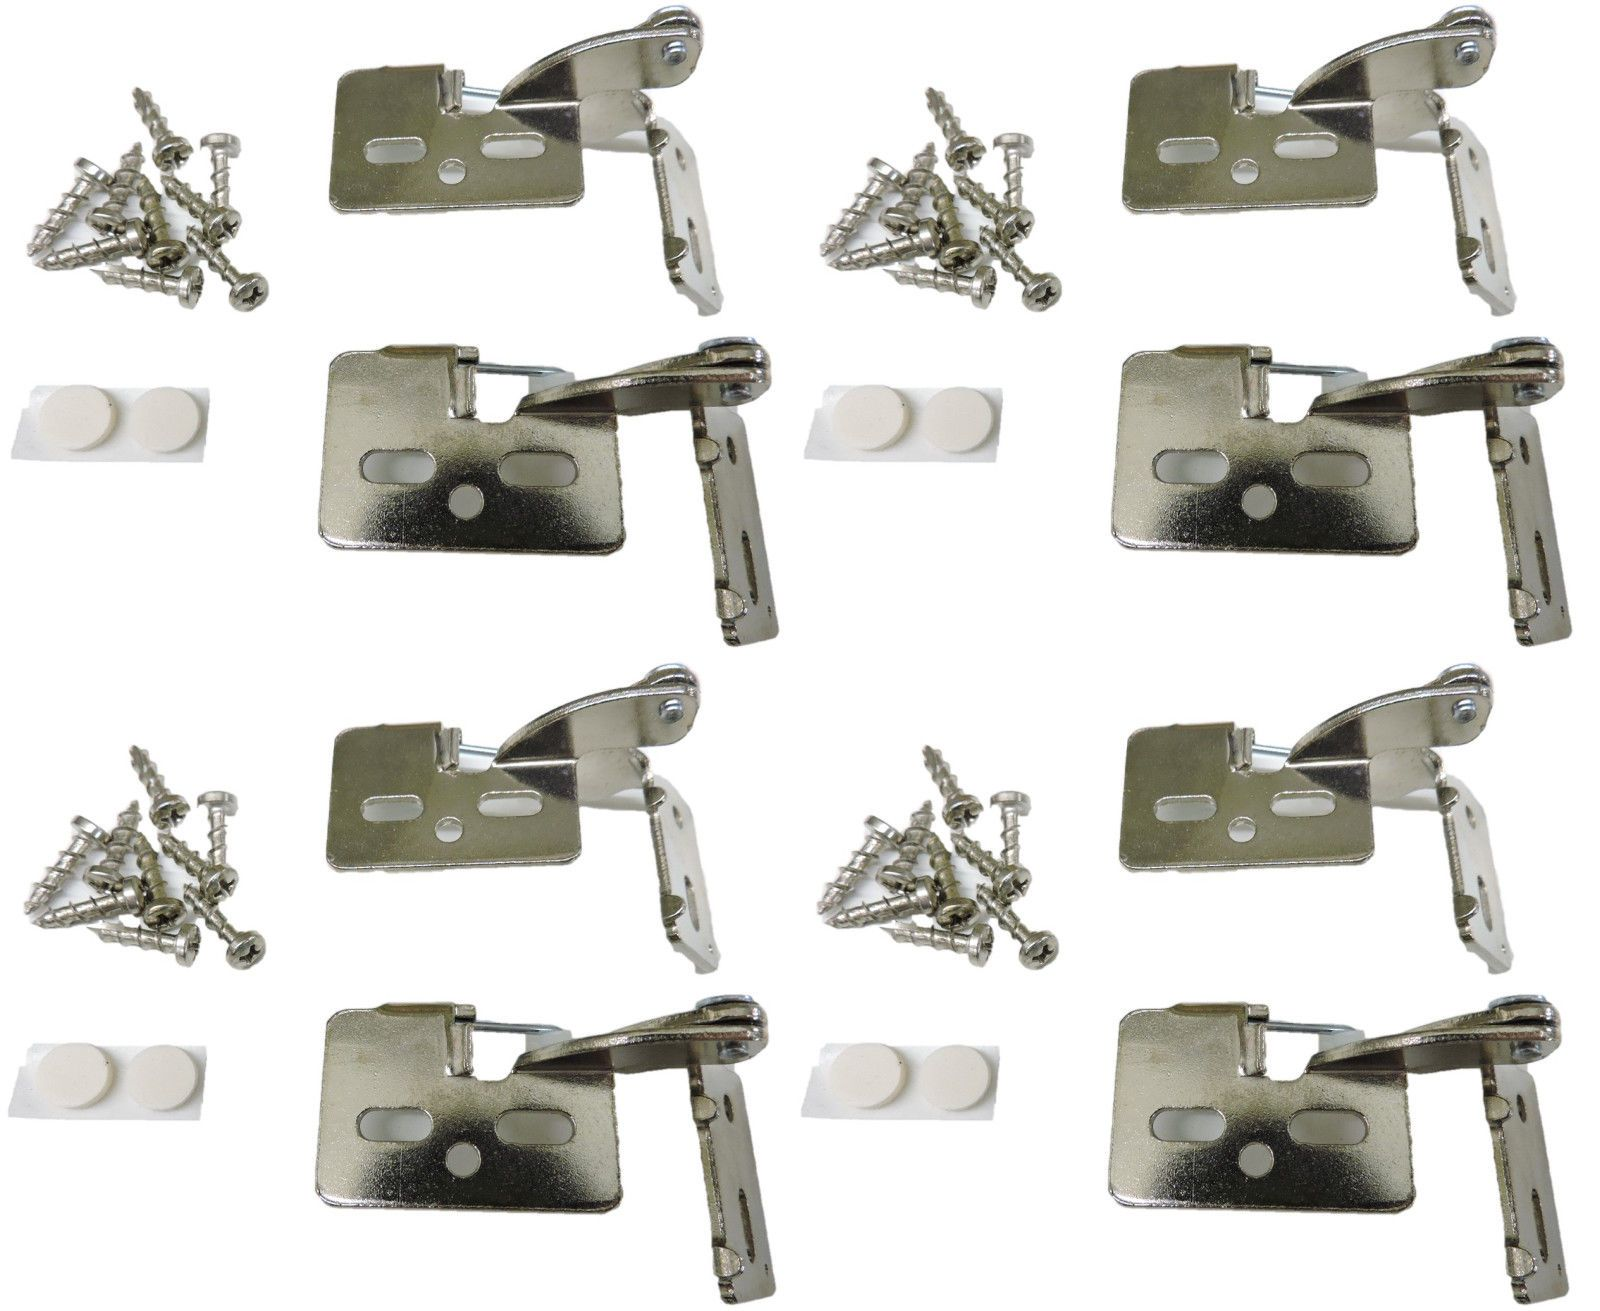 8 Self Closing Hidden Concealed Cabinet Hinge 1 2 Overlay Nickel Youngdale 65 Hinges For Cabinets